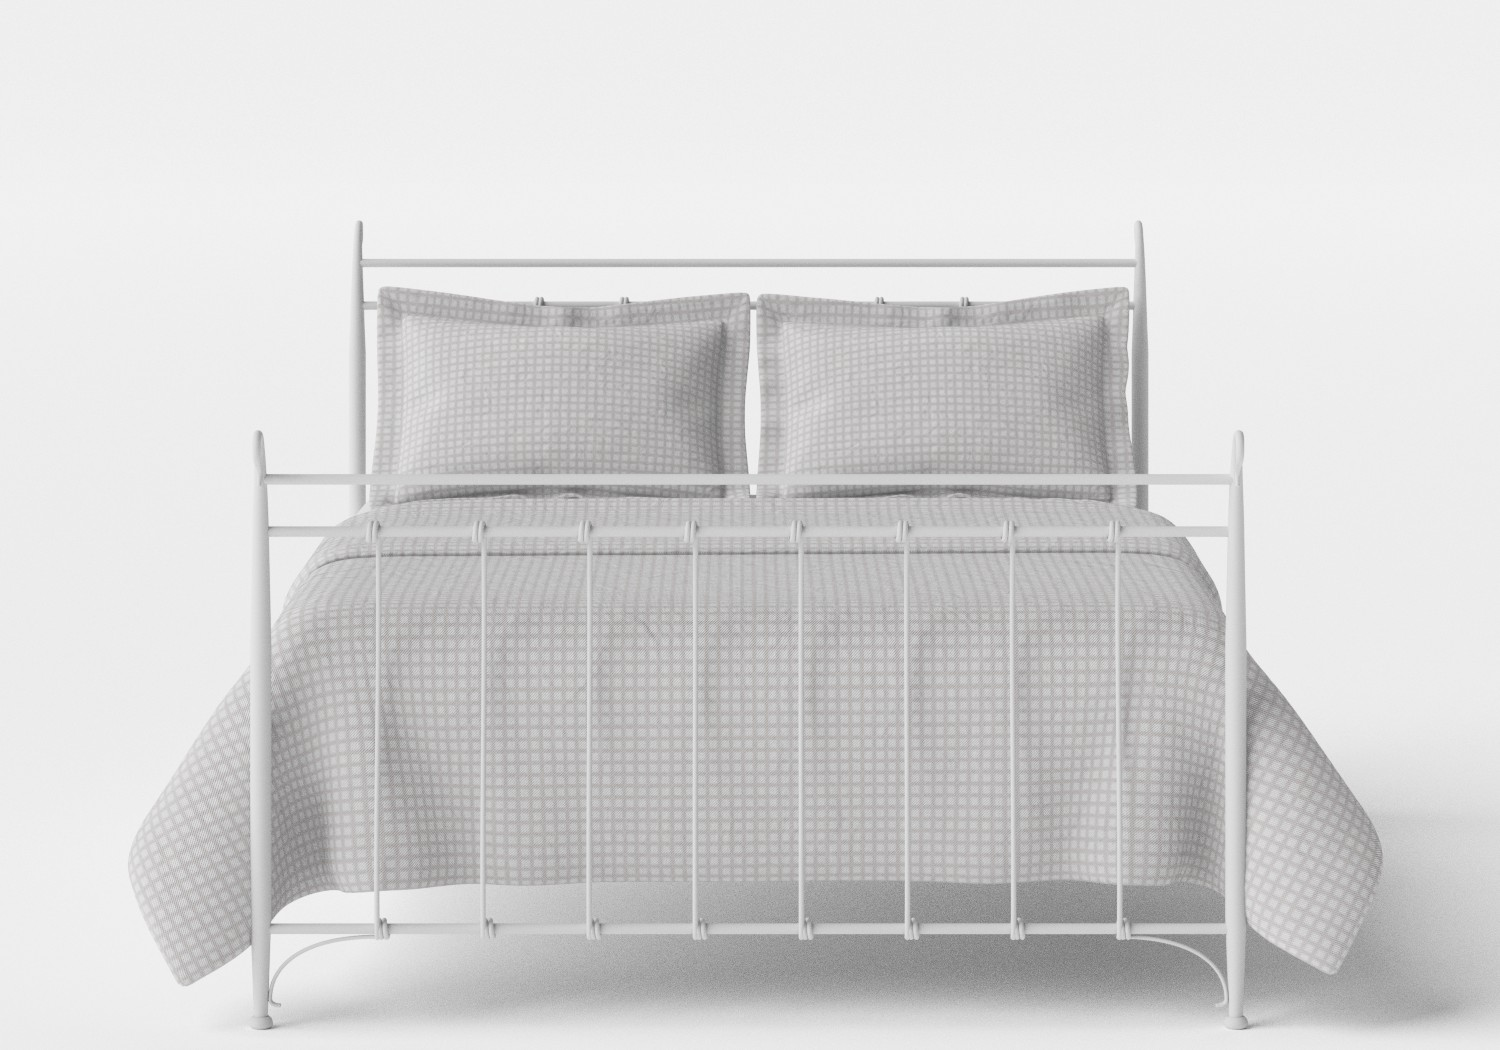 Tiffany iron bed in Satin White